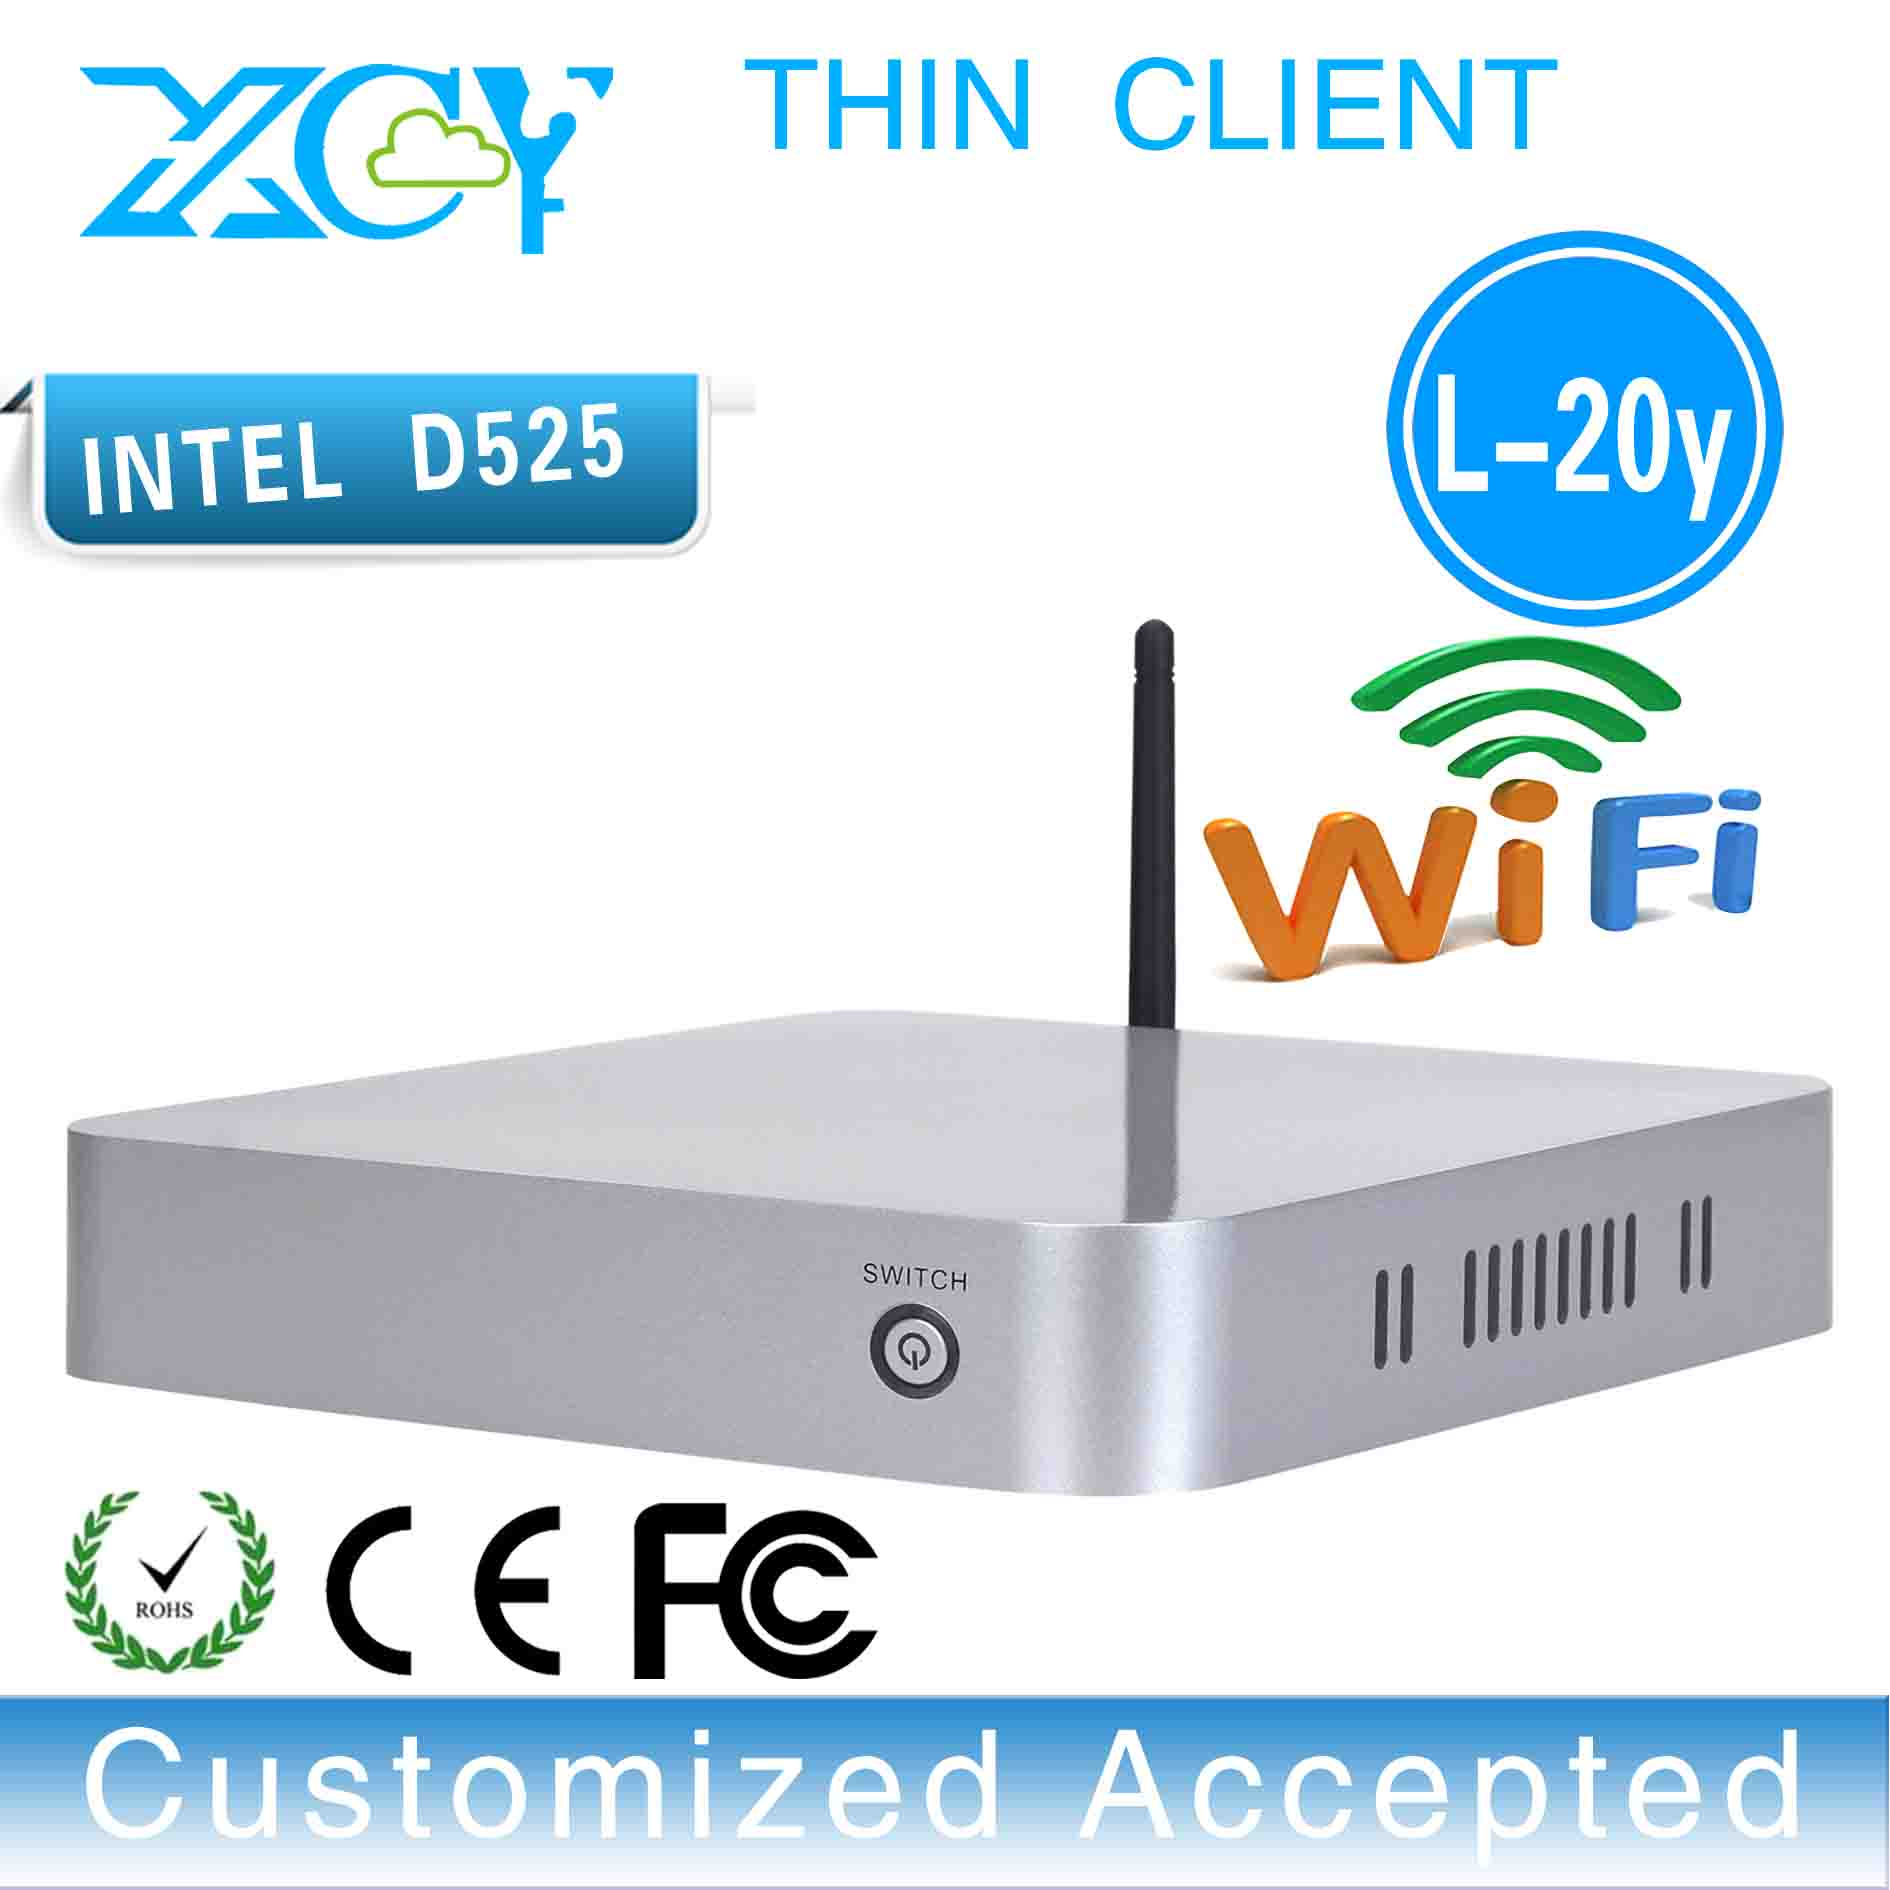 XCY Atom D525 Embedded Mini PC Intel CPU 12V Linux HDMI Thin Client Support Audio Videoconference Desktop PC(China (Mainland))